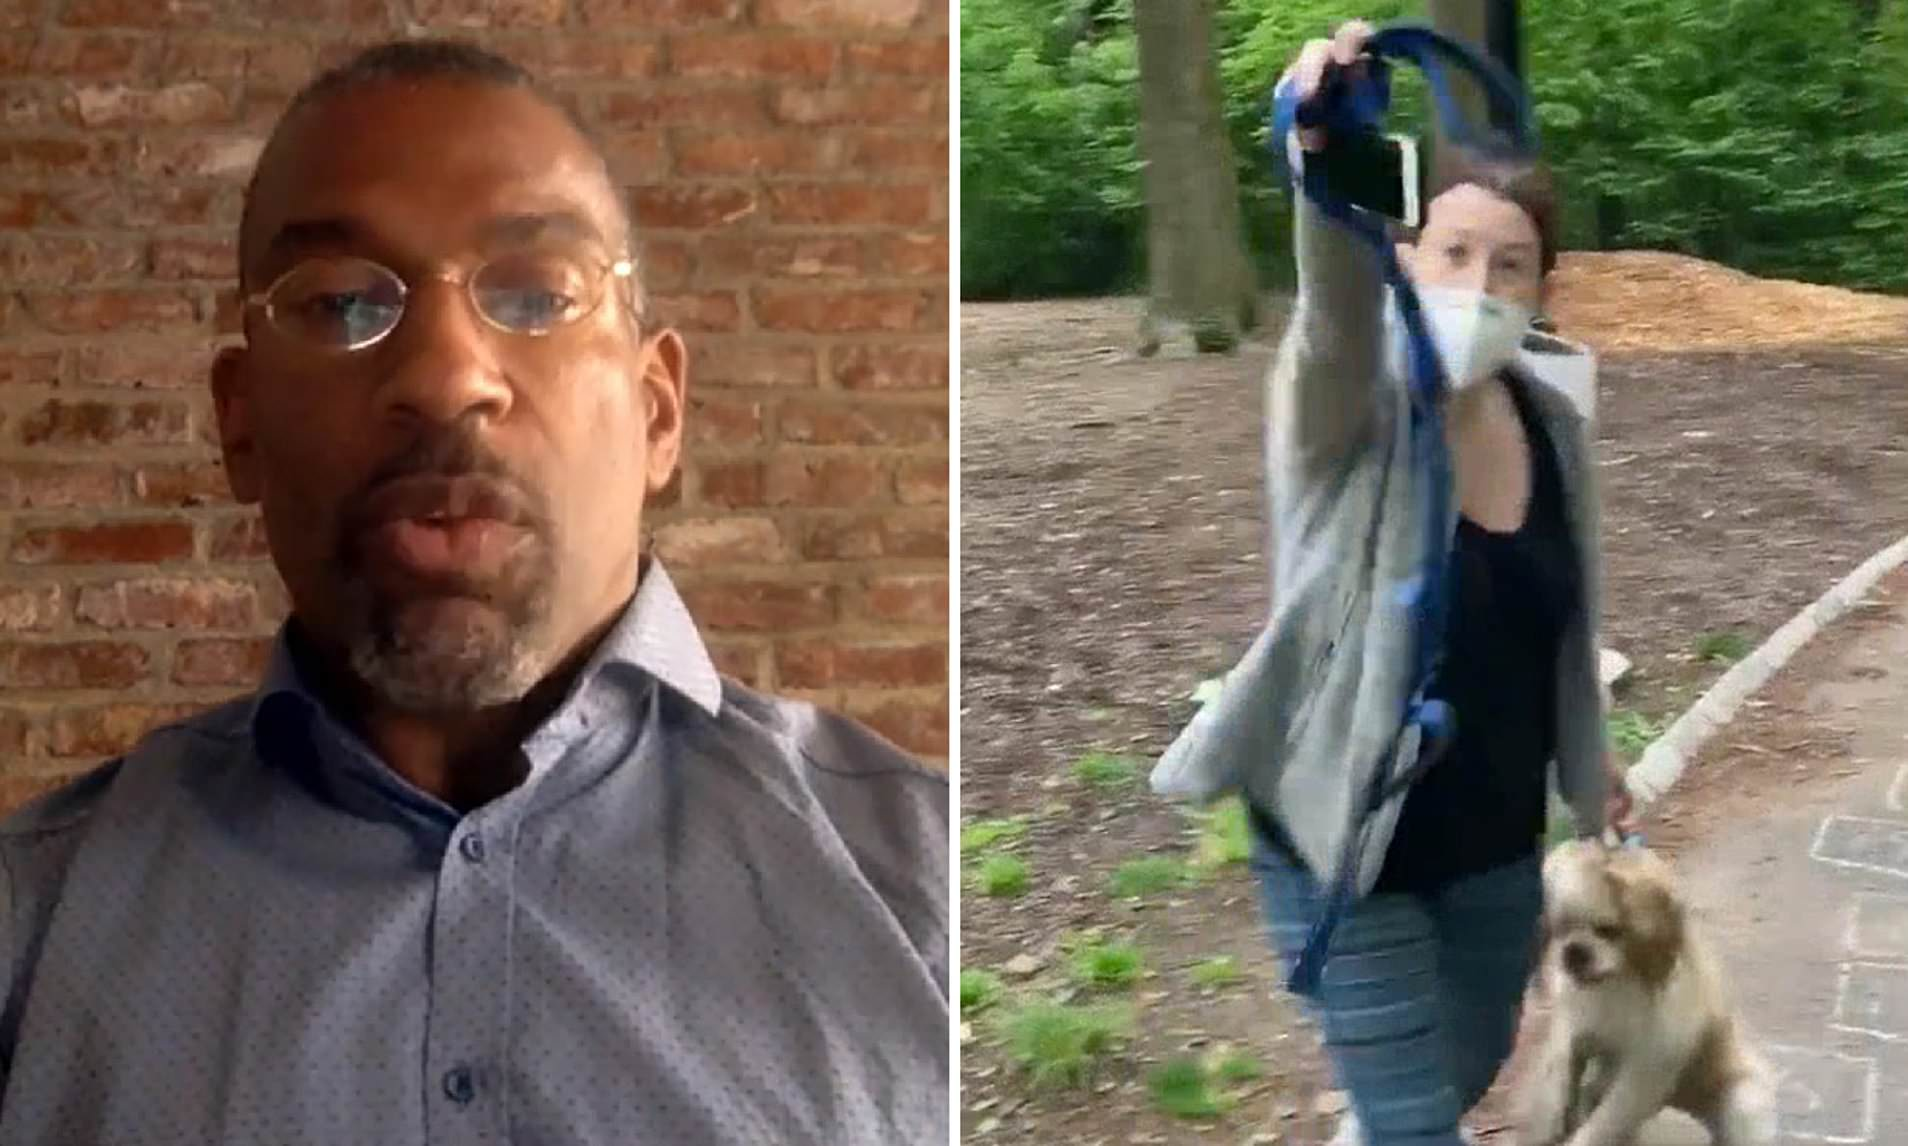 Central park Karen charged-(Bird Watcher) Christian Cooper says he won't cooperate